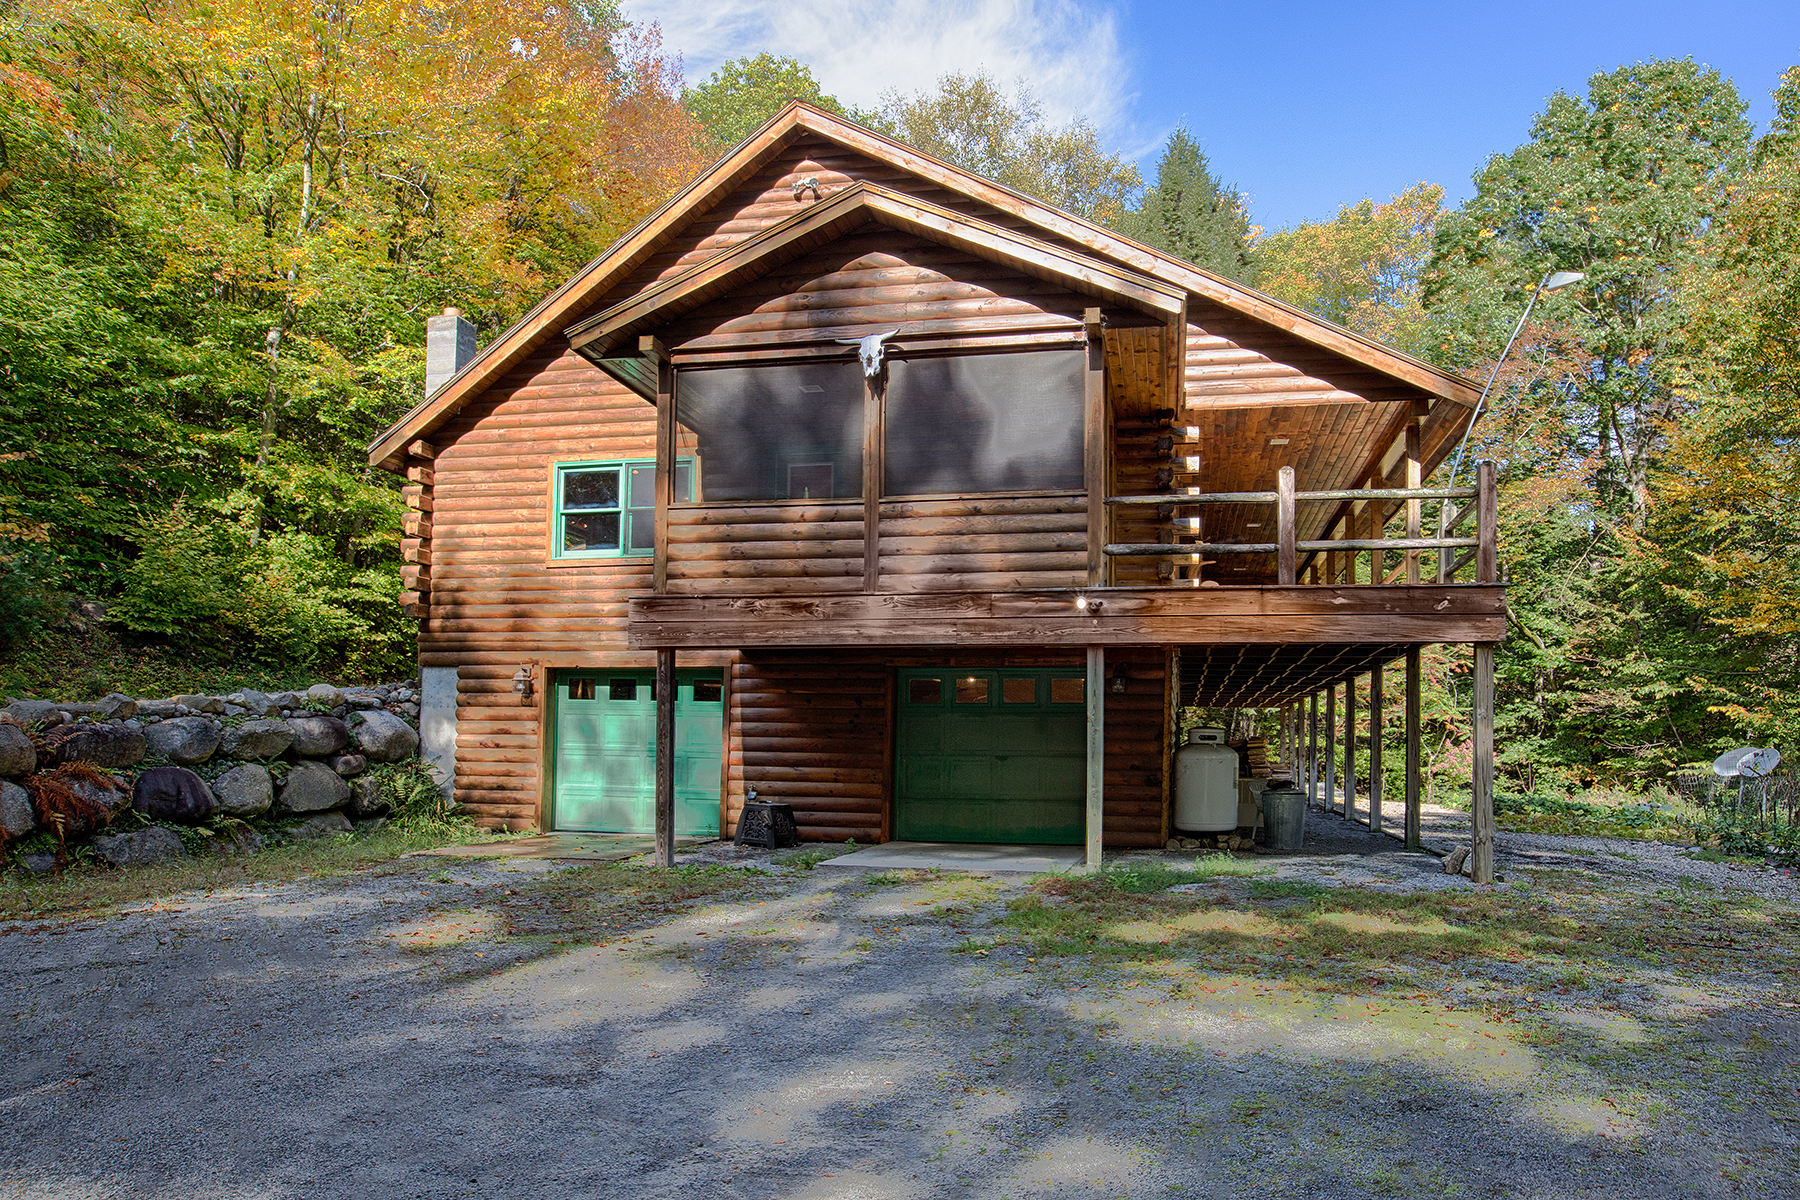 Single Family Home for sale in 213 Dippikill Rd, Warrensburg, NY ,12885